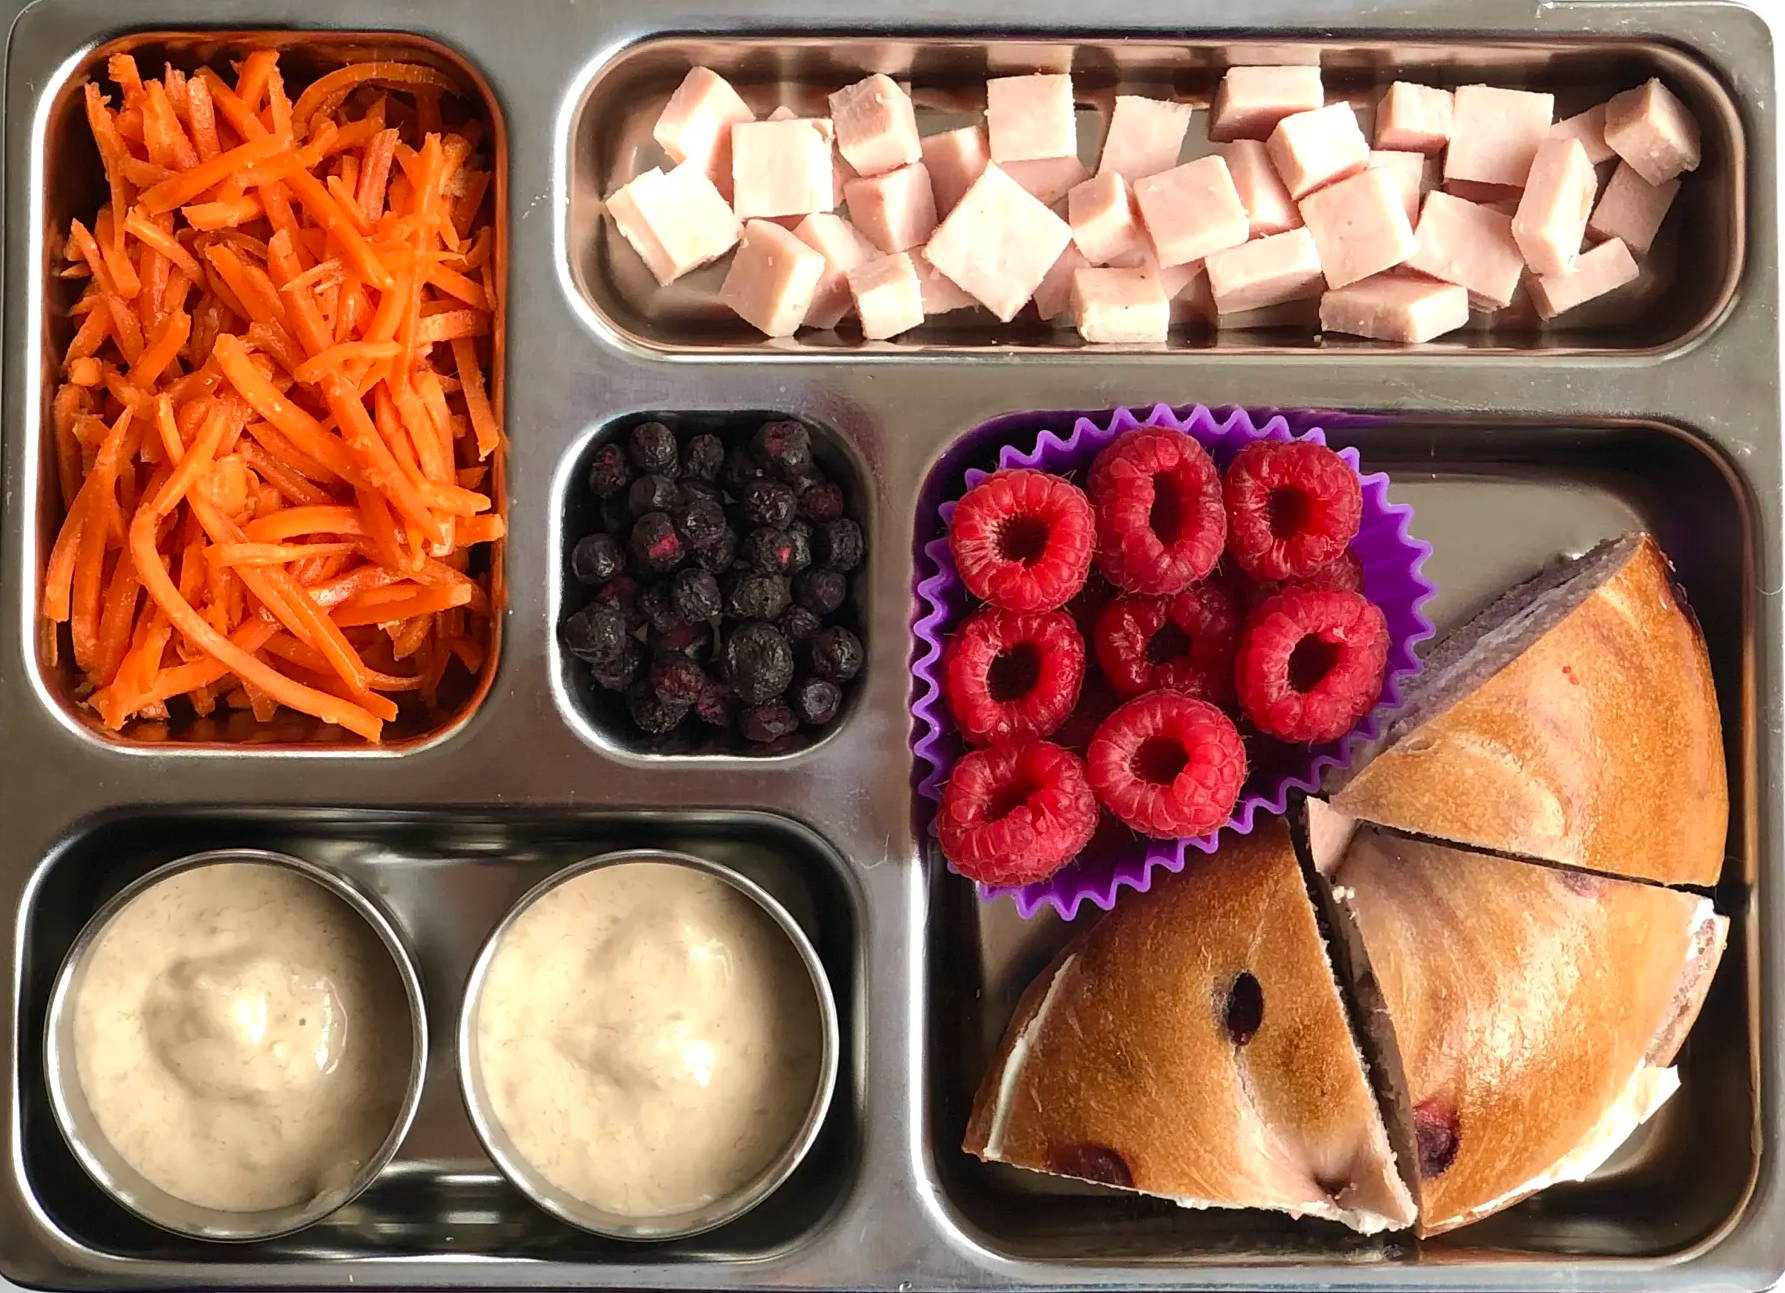 Sneak peek of a kid's quick and healthy school lunch containing Blueberry Bagel with Neufchatel, Carrot-Ginger Slaw, Natural Maple Deli Turkey Cubes, Banana Yogurt, Raspberries, and Freeze-Dried Blueberries..